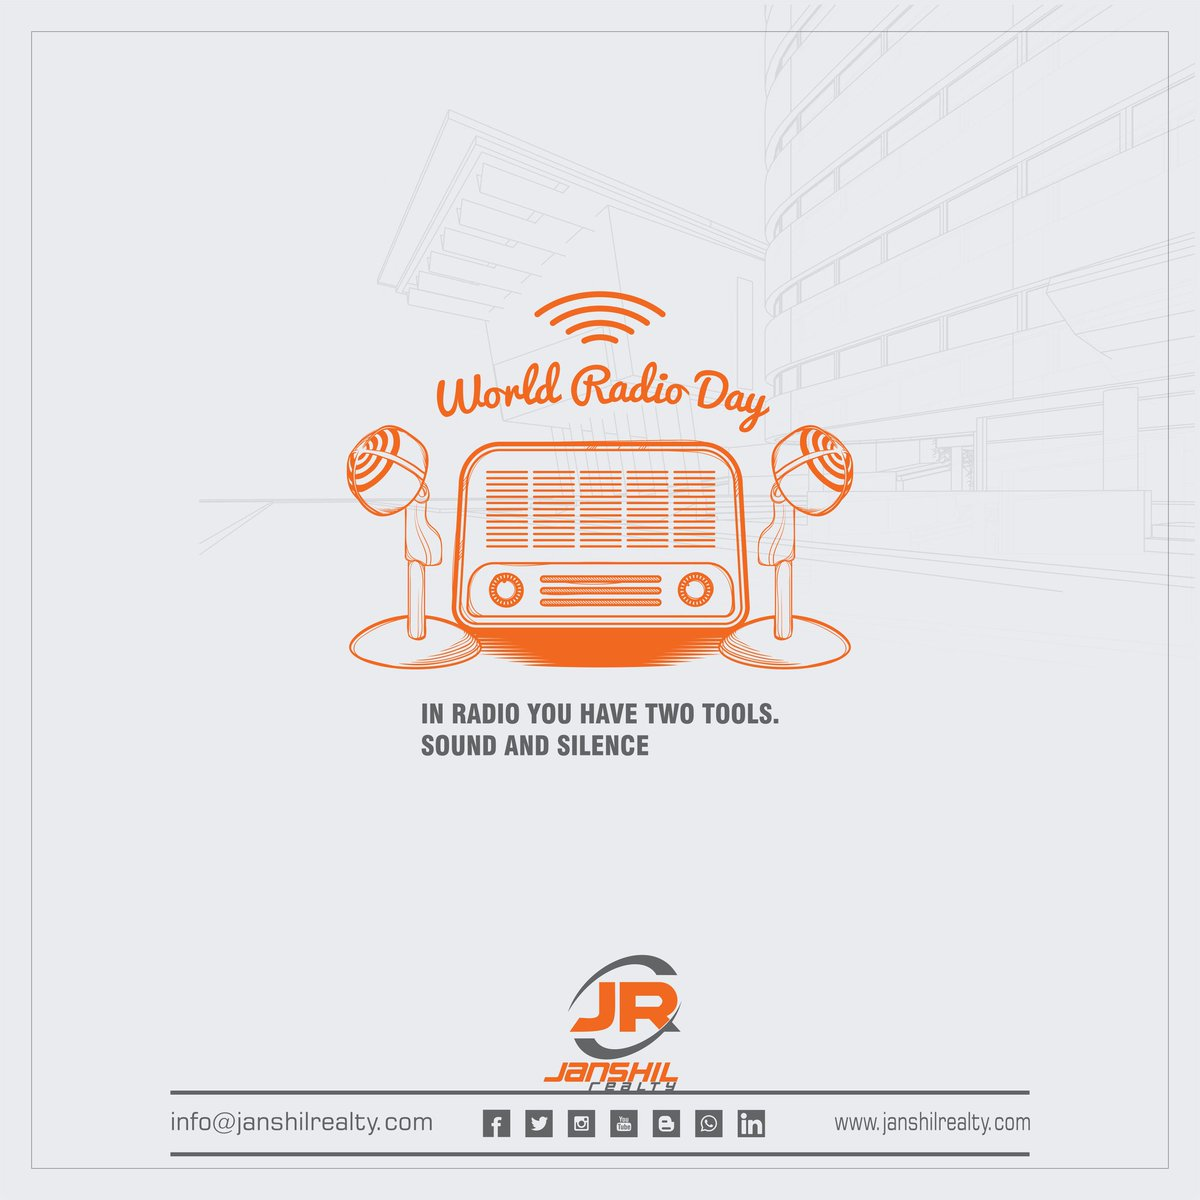 In #radio you have two tools. Sound and silence. #worldradioday  #realestate #property #Investment  #propertymanagement #Realtor #janshilrealty #southbopal #bopal #Ahmedabad #realestateforsale #propertymanagment #propertyinvestments #realestateadvice #realestateinvestmentspic.twitter.com/YVkarDoFpo